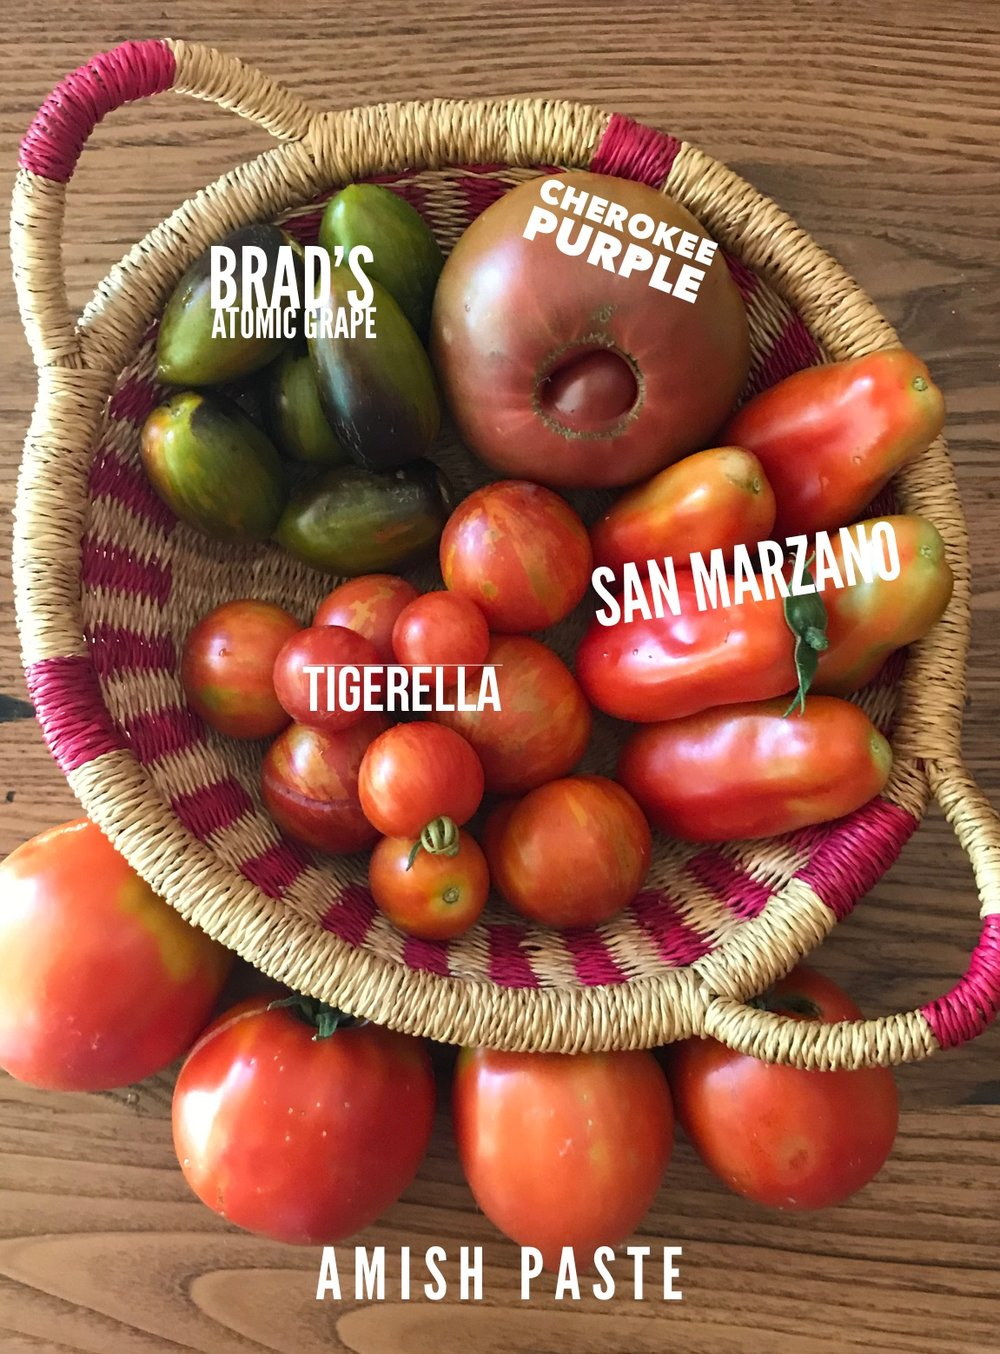 Our 2018 tomato lineup, some old friends and some new varieties. 2019 will be another year of tomato exploration for us as we branch out and seek some new favorites.